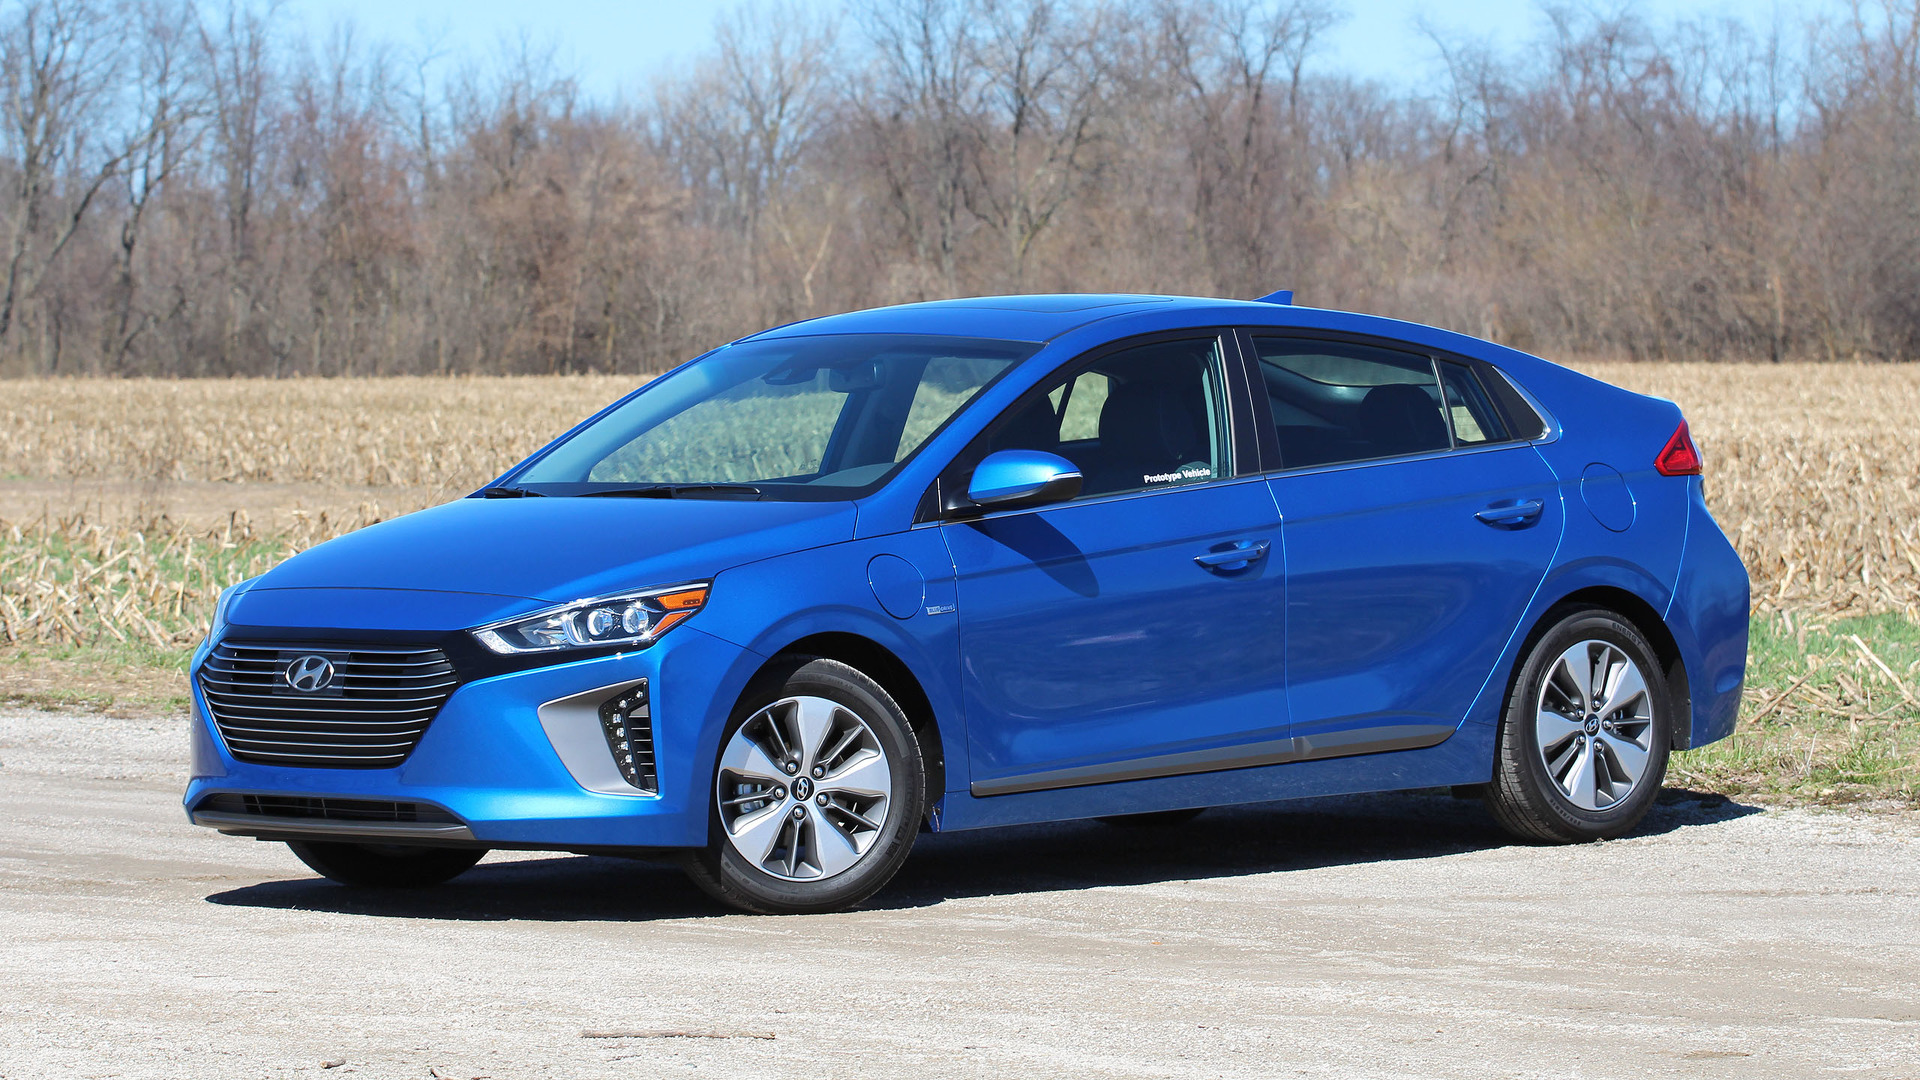 Electric Cars For Sale >> 2018 Hyundai Ioniq Plug-In Prototype Review: Move Over, Prius